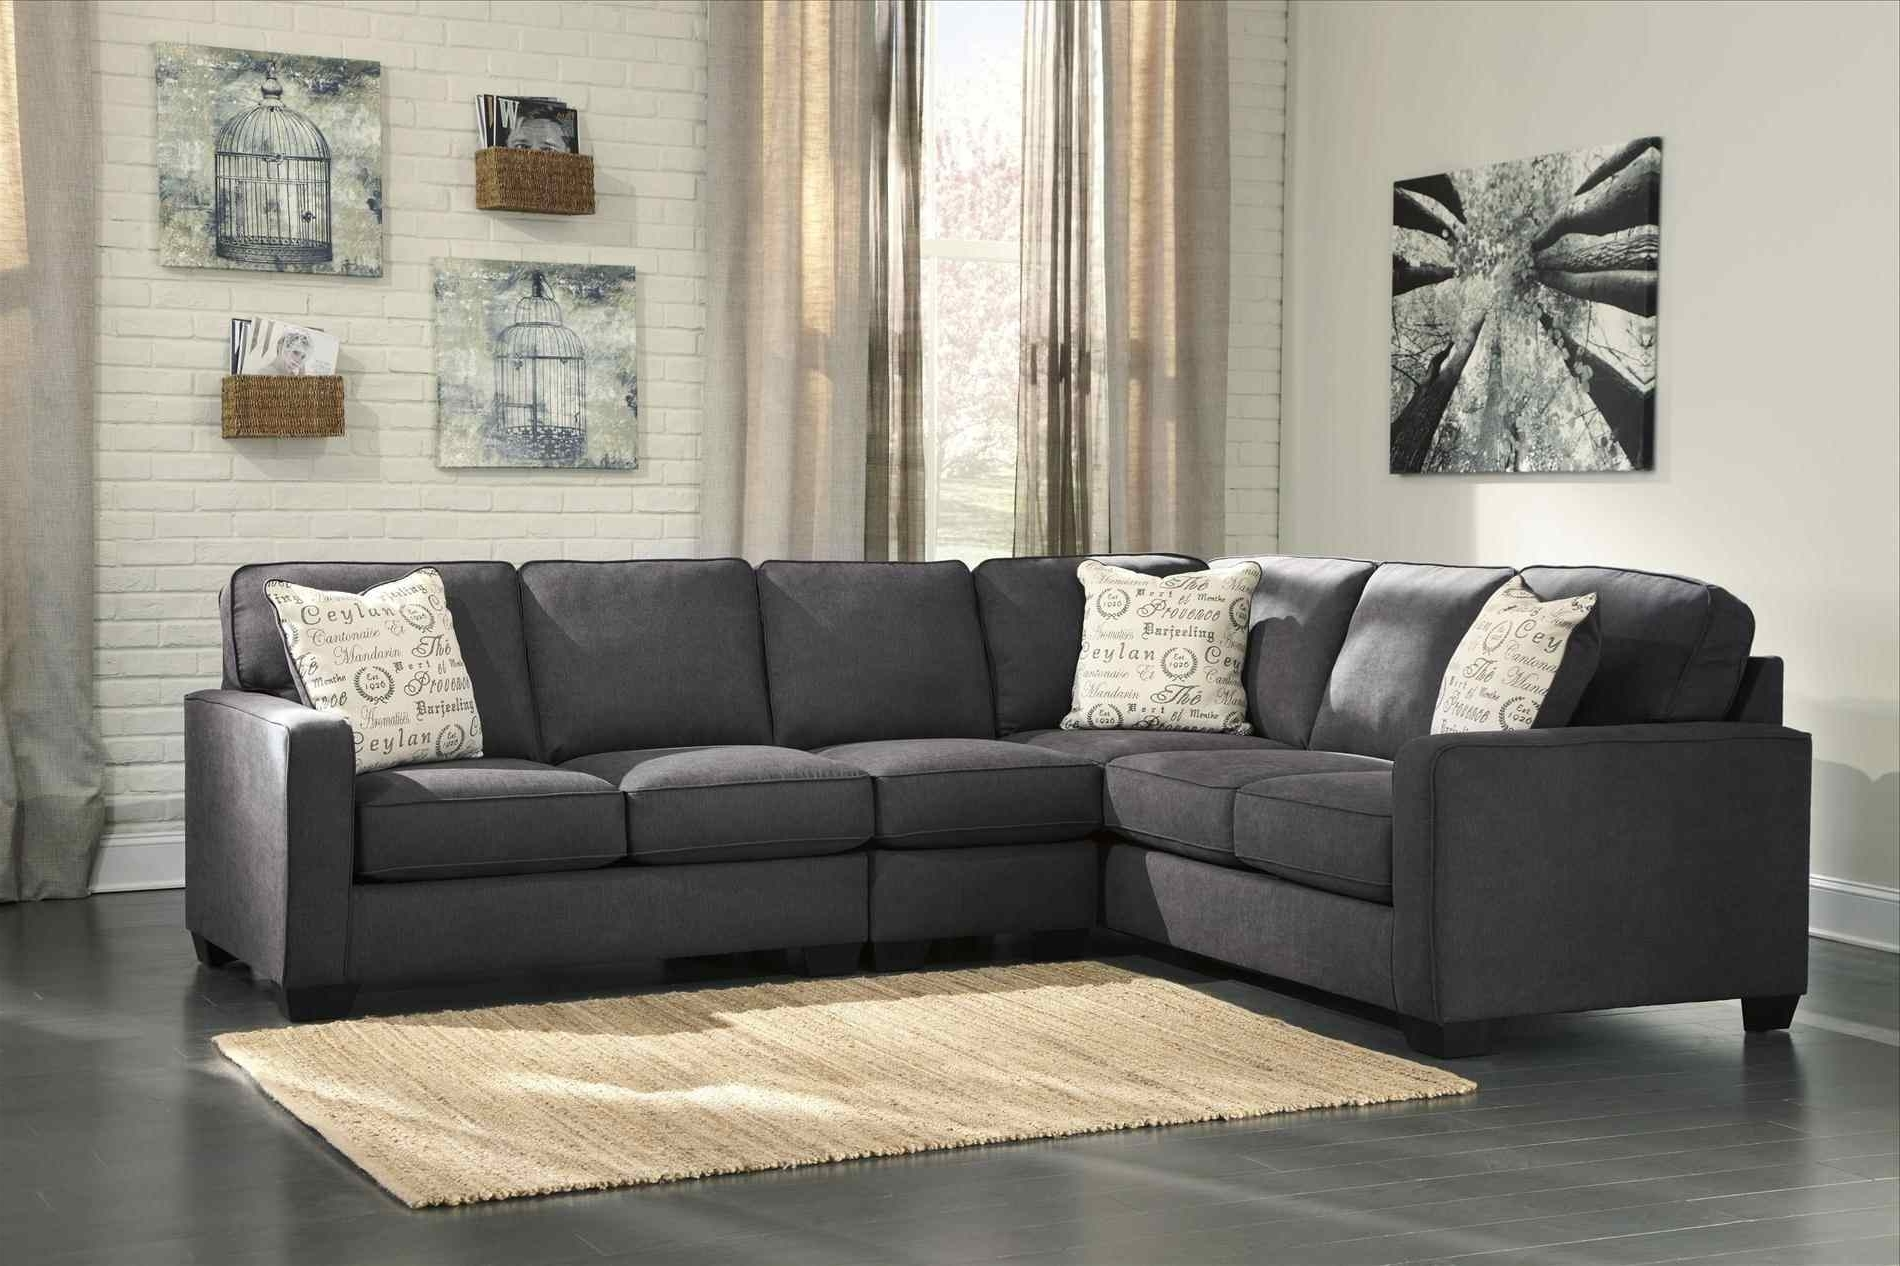 Well Known Simmons Chaise Sofas With Regard To Sofa : Simmons Chaise Gray Sectional Sofa With Cheap S Under (View 15 of 20)